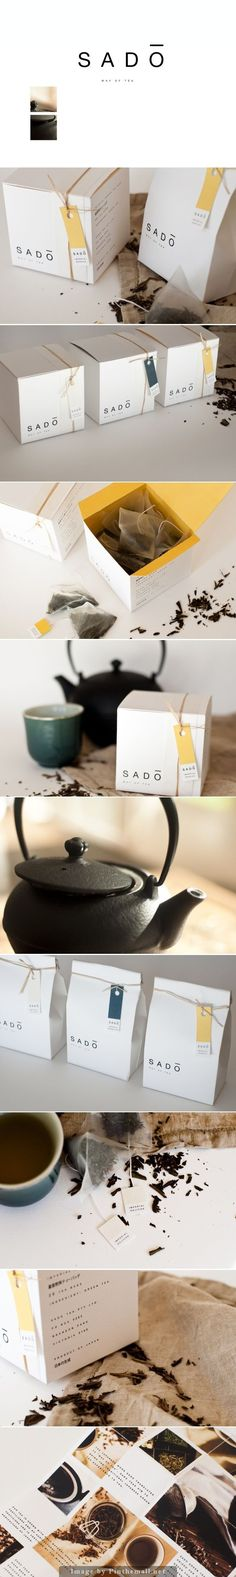 Got time time for some Sato Tea #packaging and design inspiration by Emma Goddard curated by Packaging Diva PD